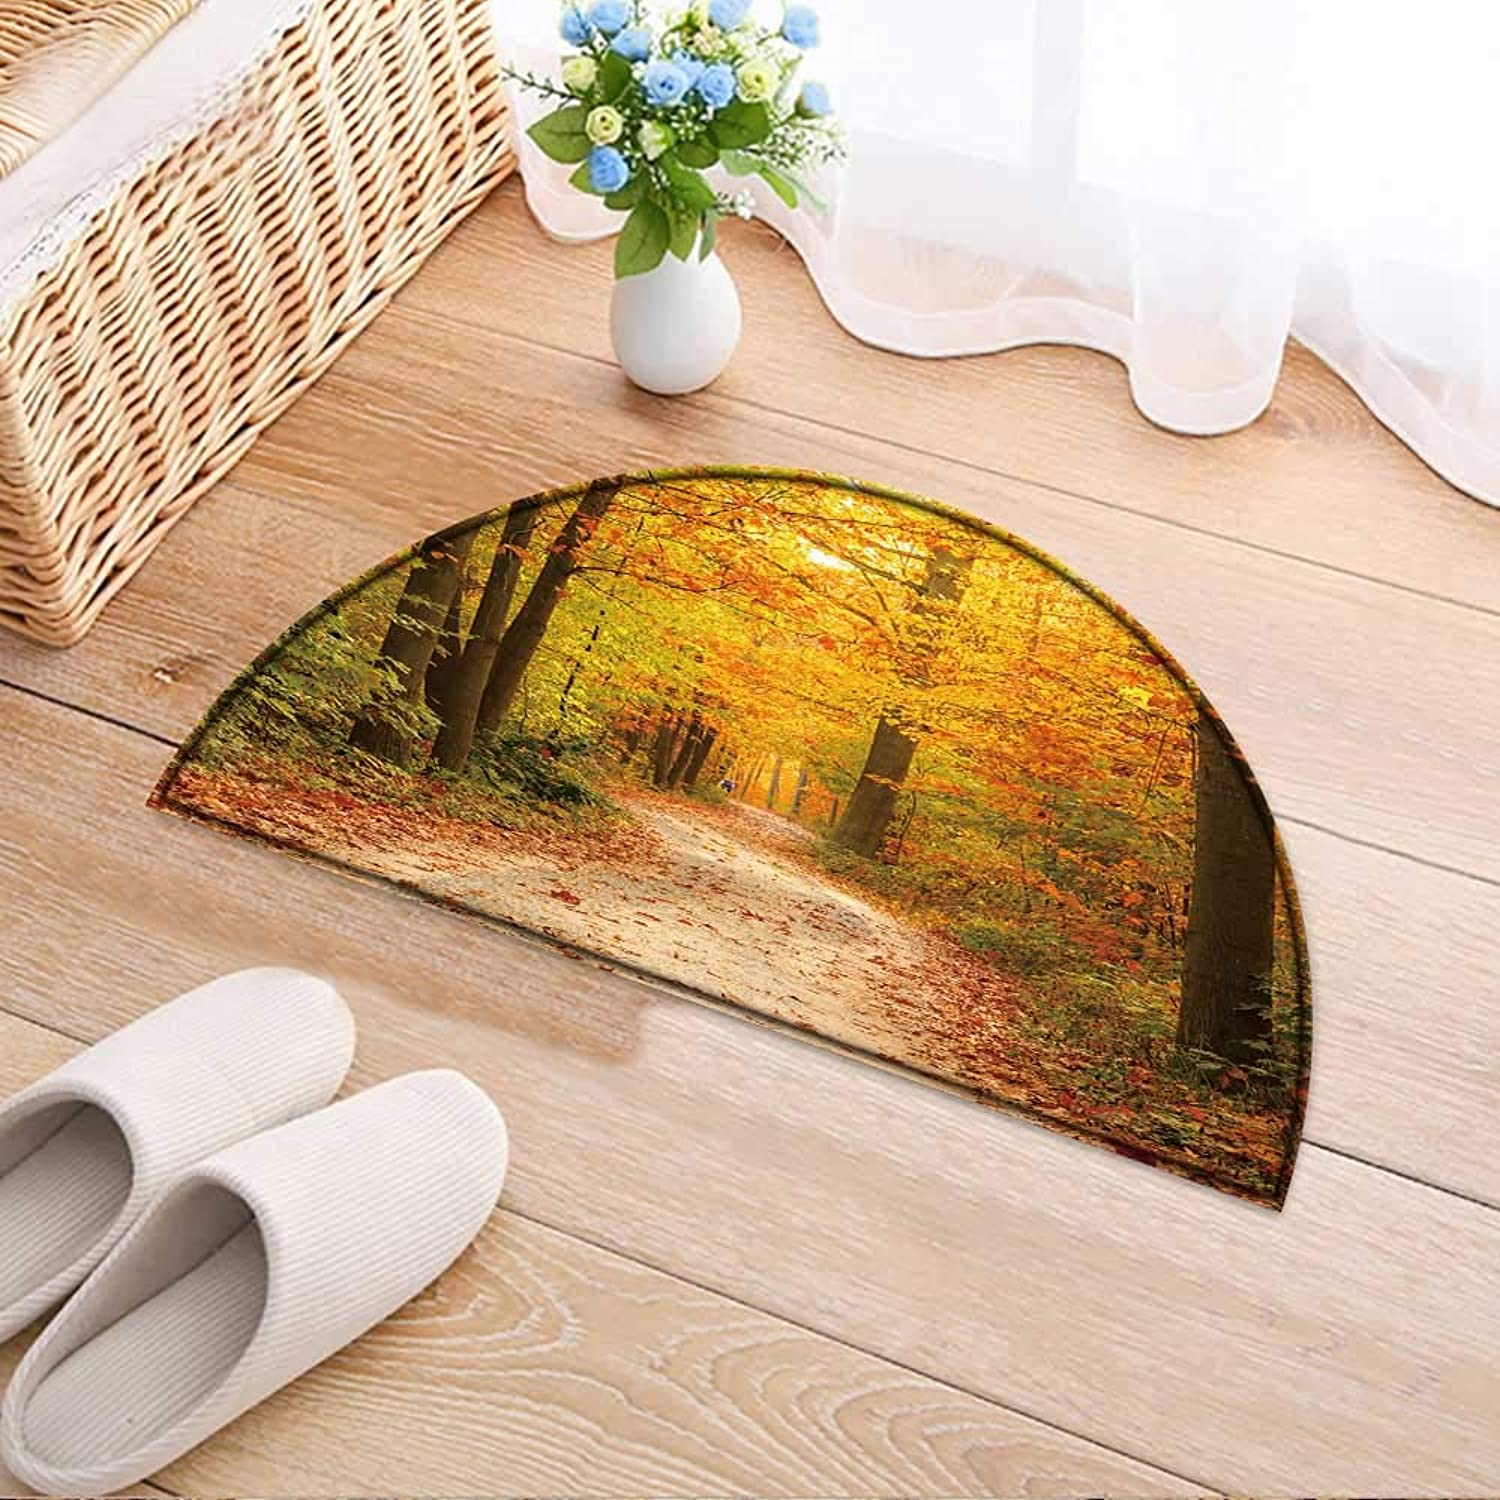 Entrance Hall Carpet Pathway Through The Autumn Forest Non Slip Rug W43 x H30 INCH